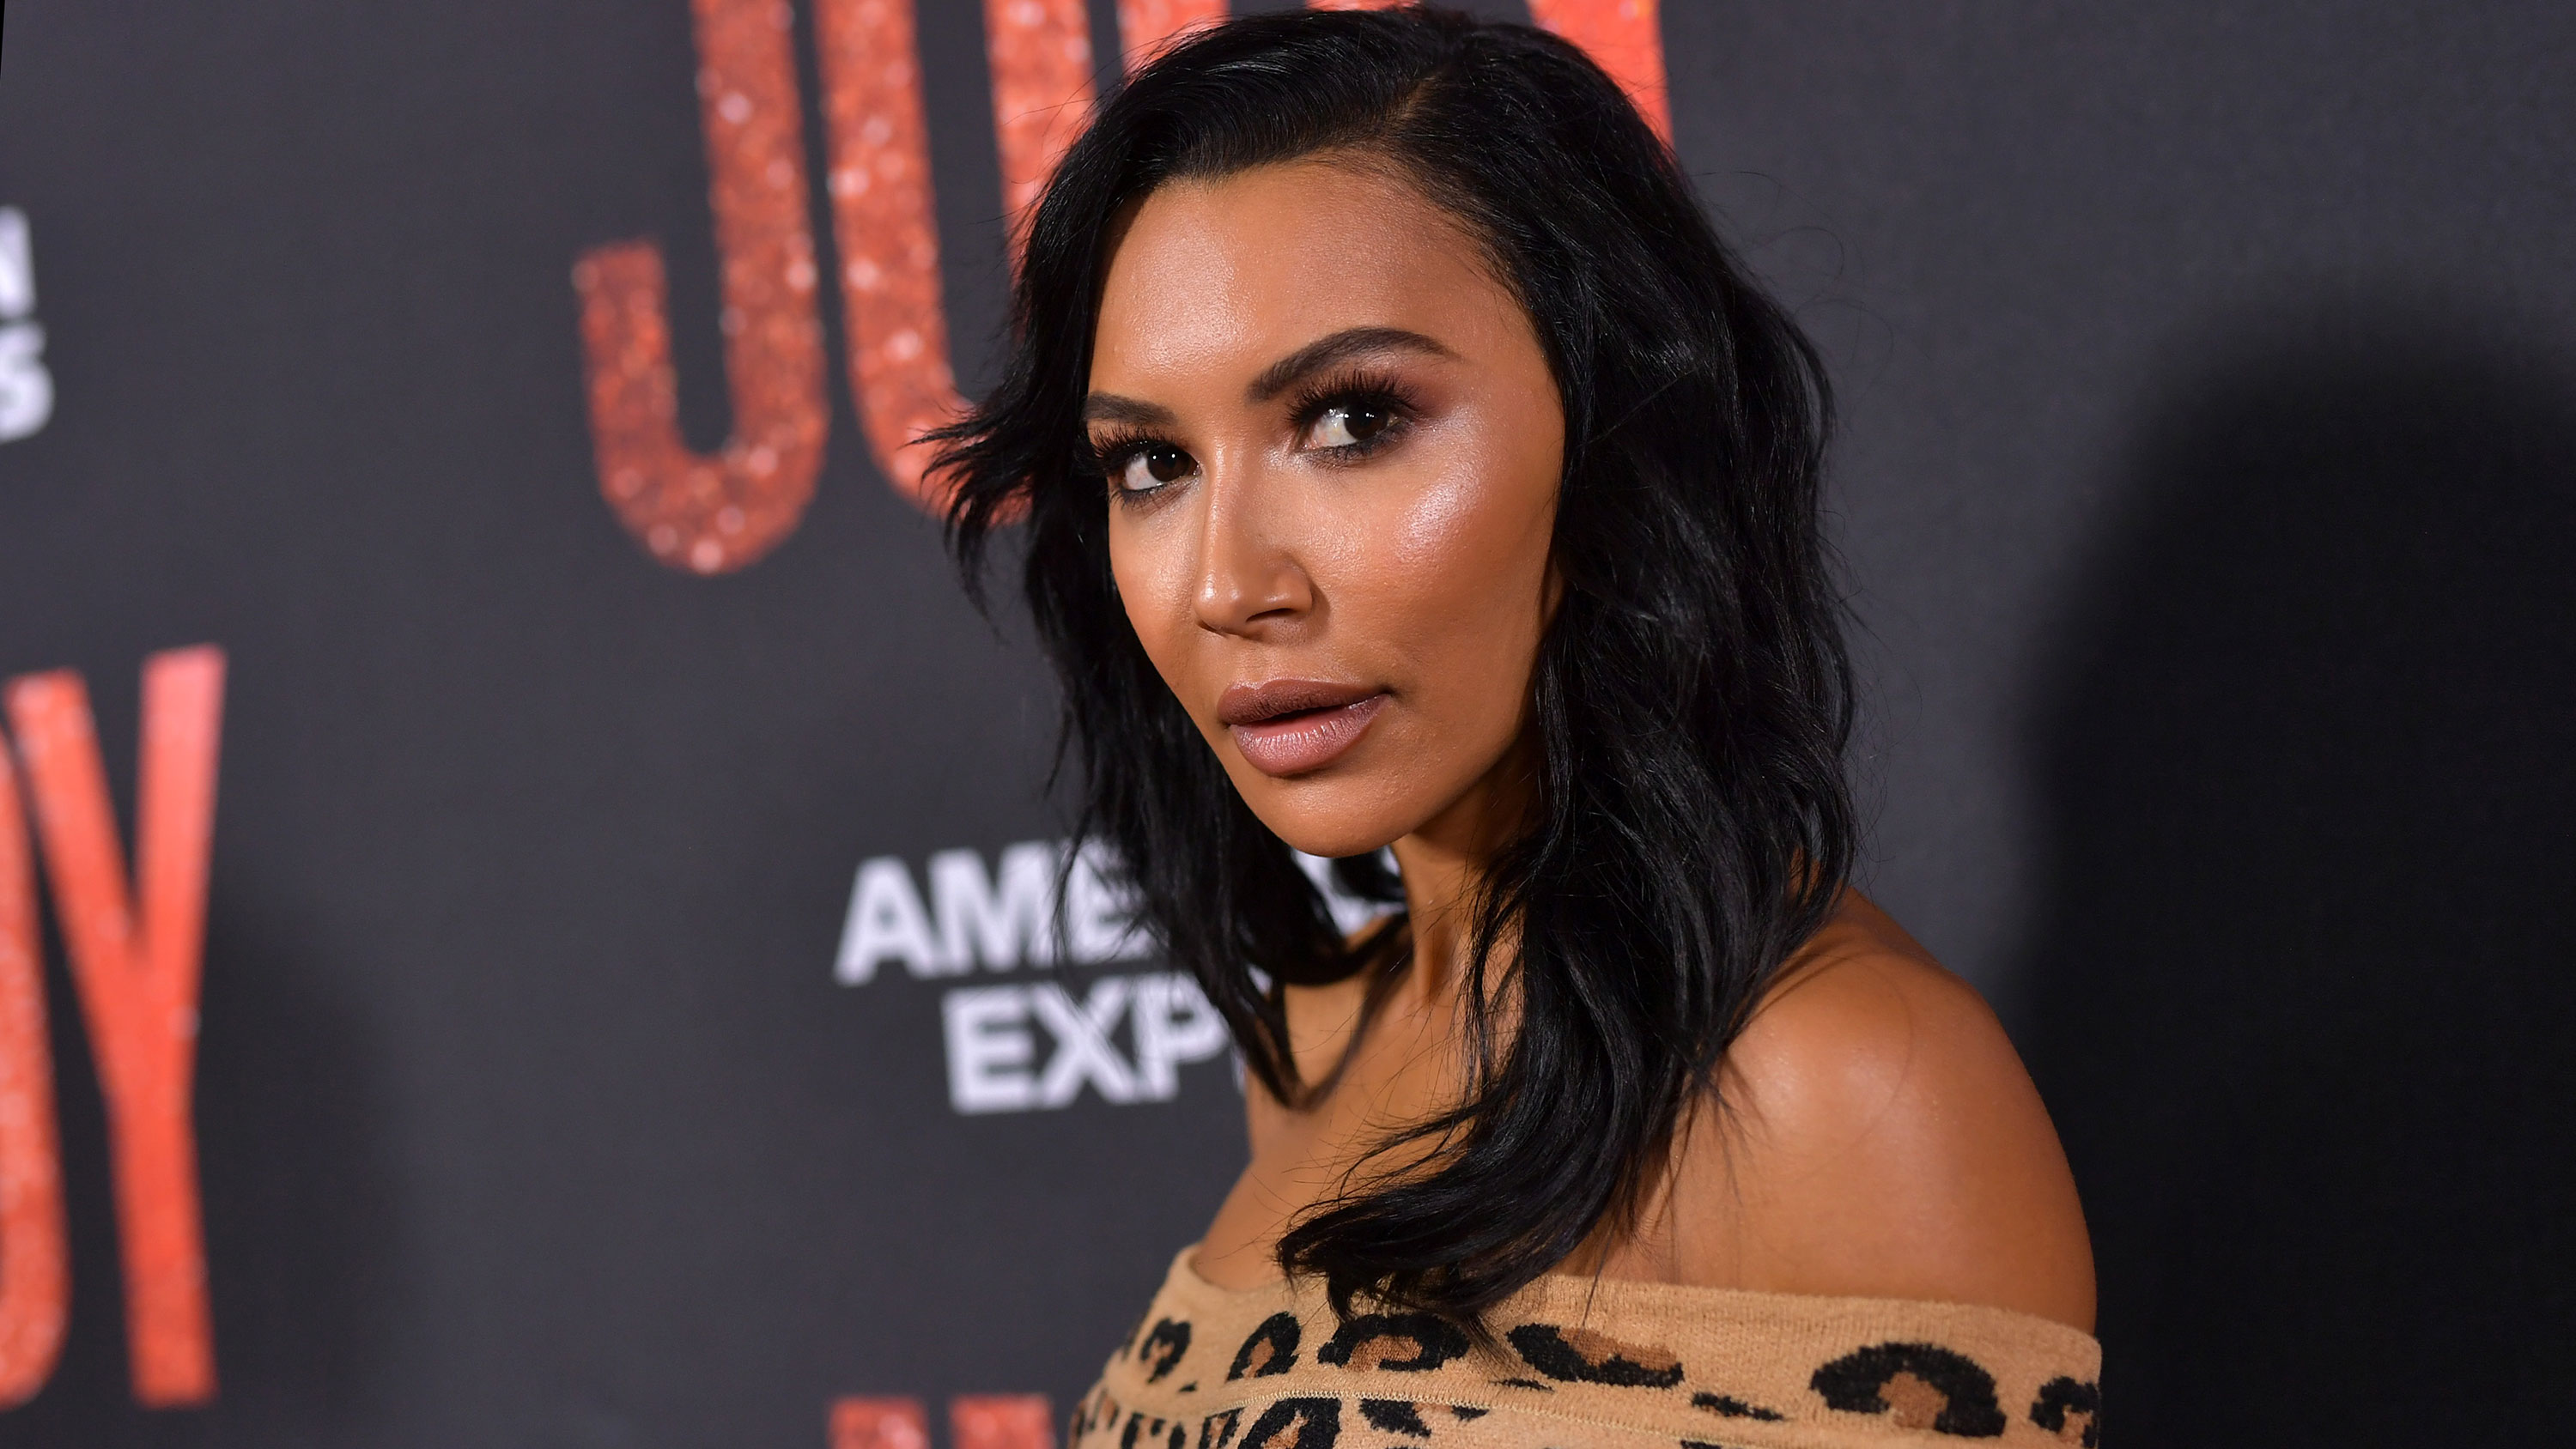 'Glee' creators are setting up a college fund for Naya Rivera's 4-year-old son